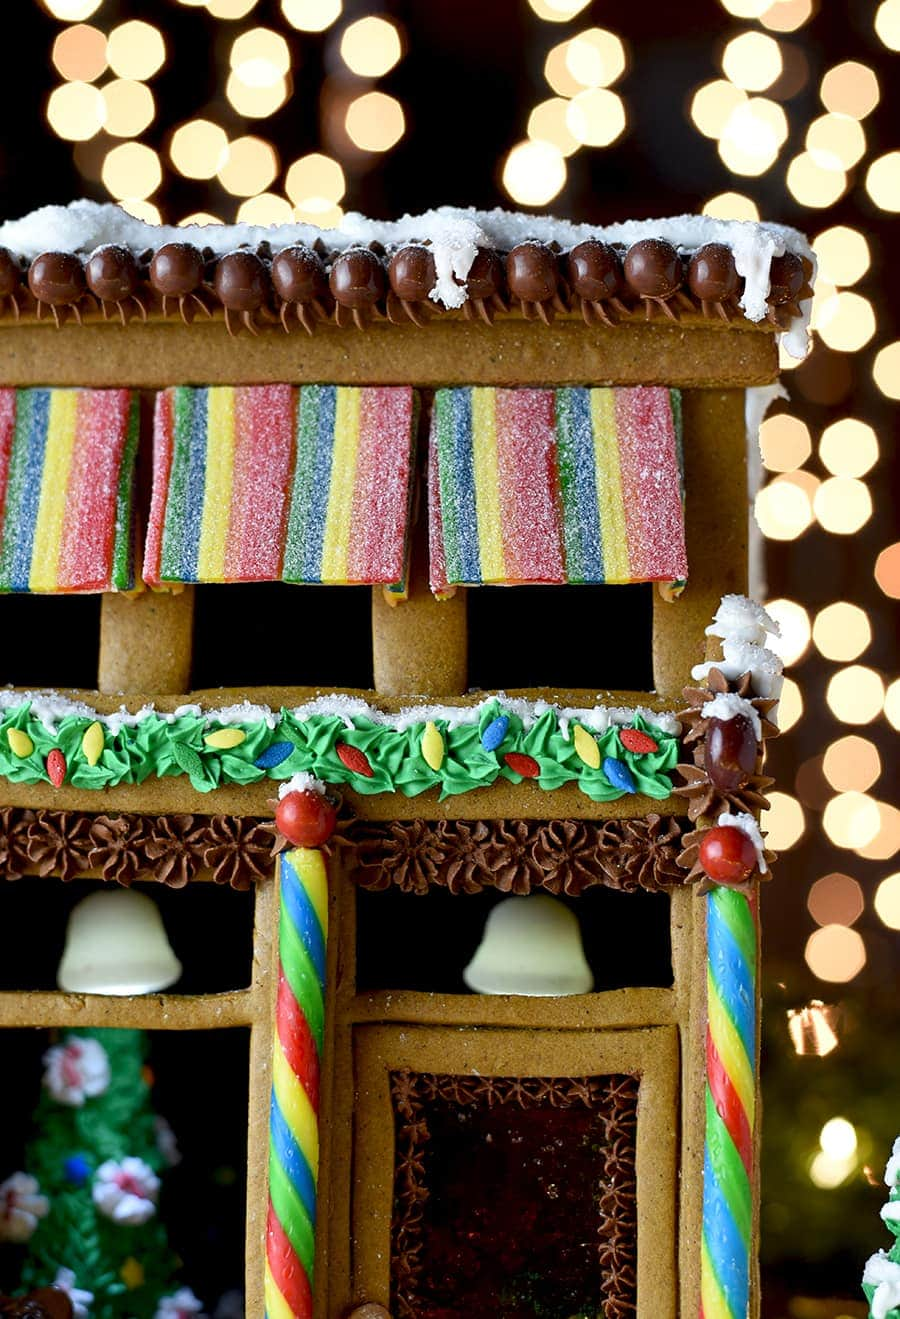 closeup of gingerbread house